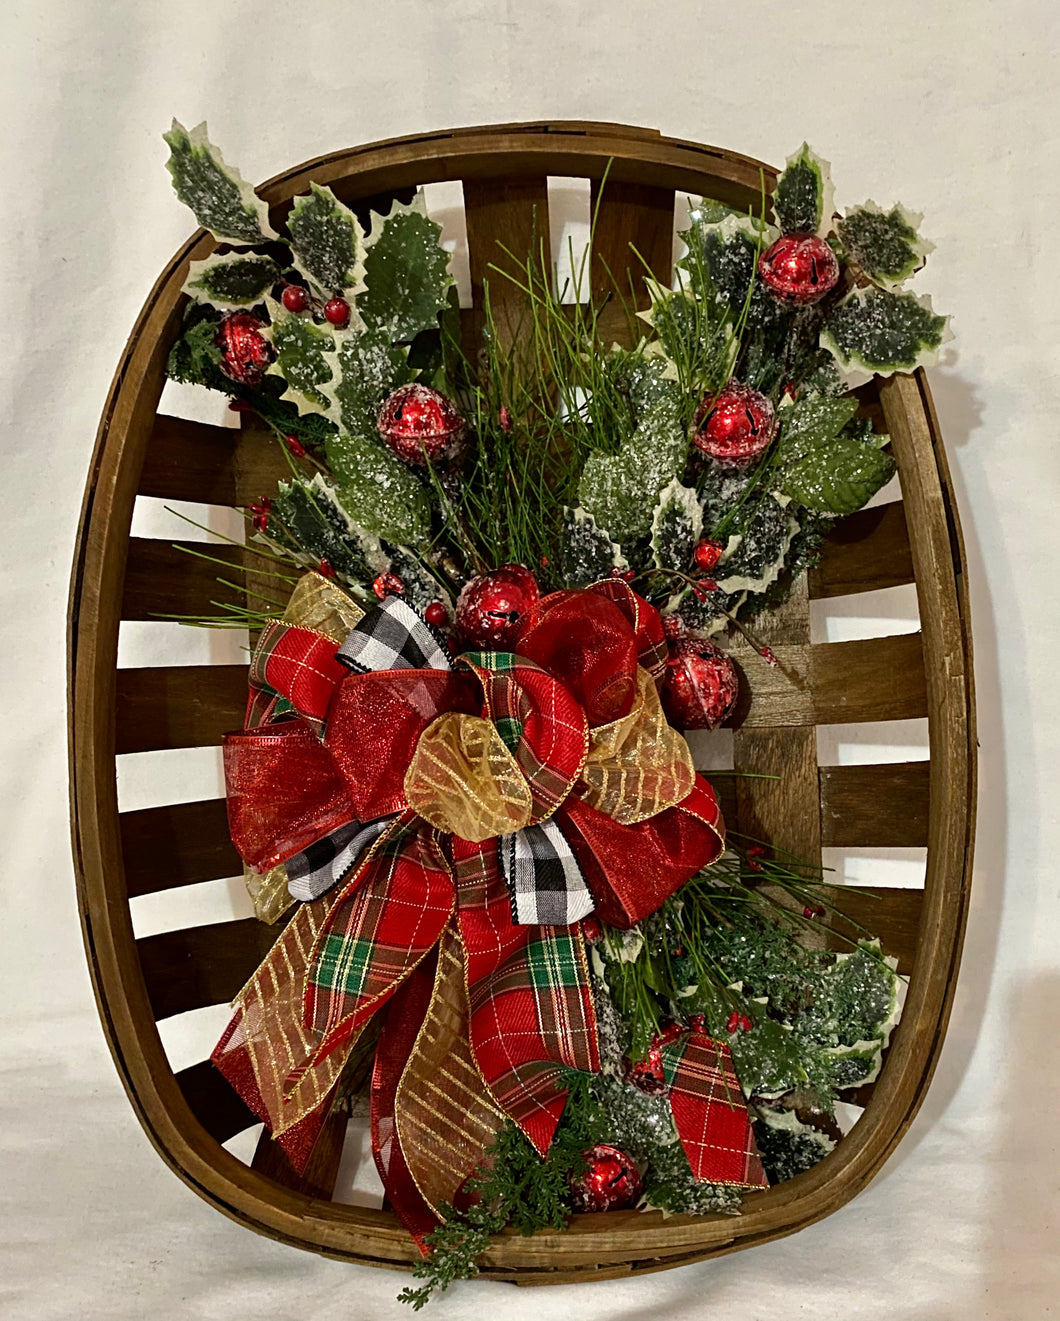 Holiday Tobacco Basket is a beautiful handmade wall decor decorated with holly, Christmas picks, berries, red bells, and snow. It measures 19